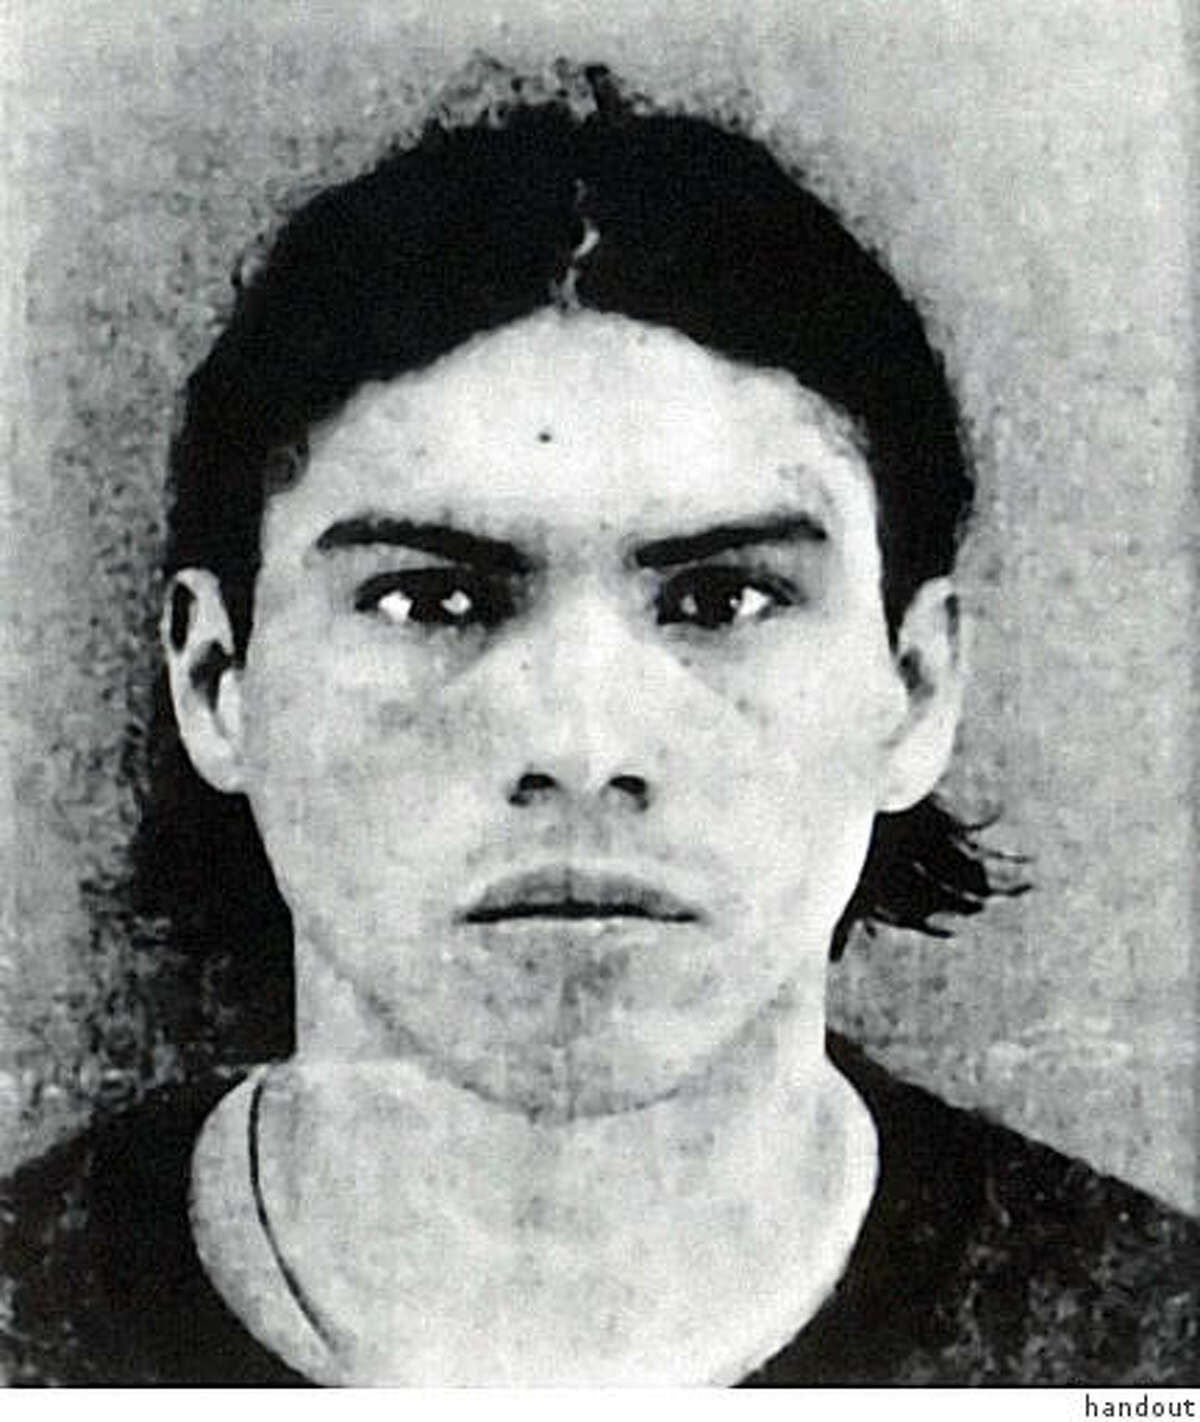 Jose Mendoza Cerrato, 25, who identified himself as 16-year-old Javier Martinez when this booking photo was taken in April 2008. Martinez had been arrested on suspicion of dealing crack in the Tenderloin, and convinced a juvenile court commissioner that he was a minor.